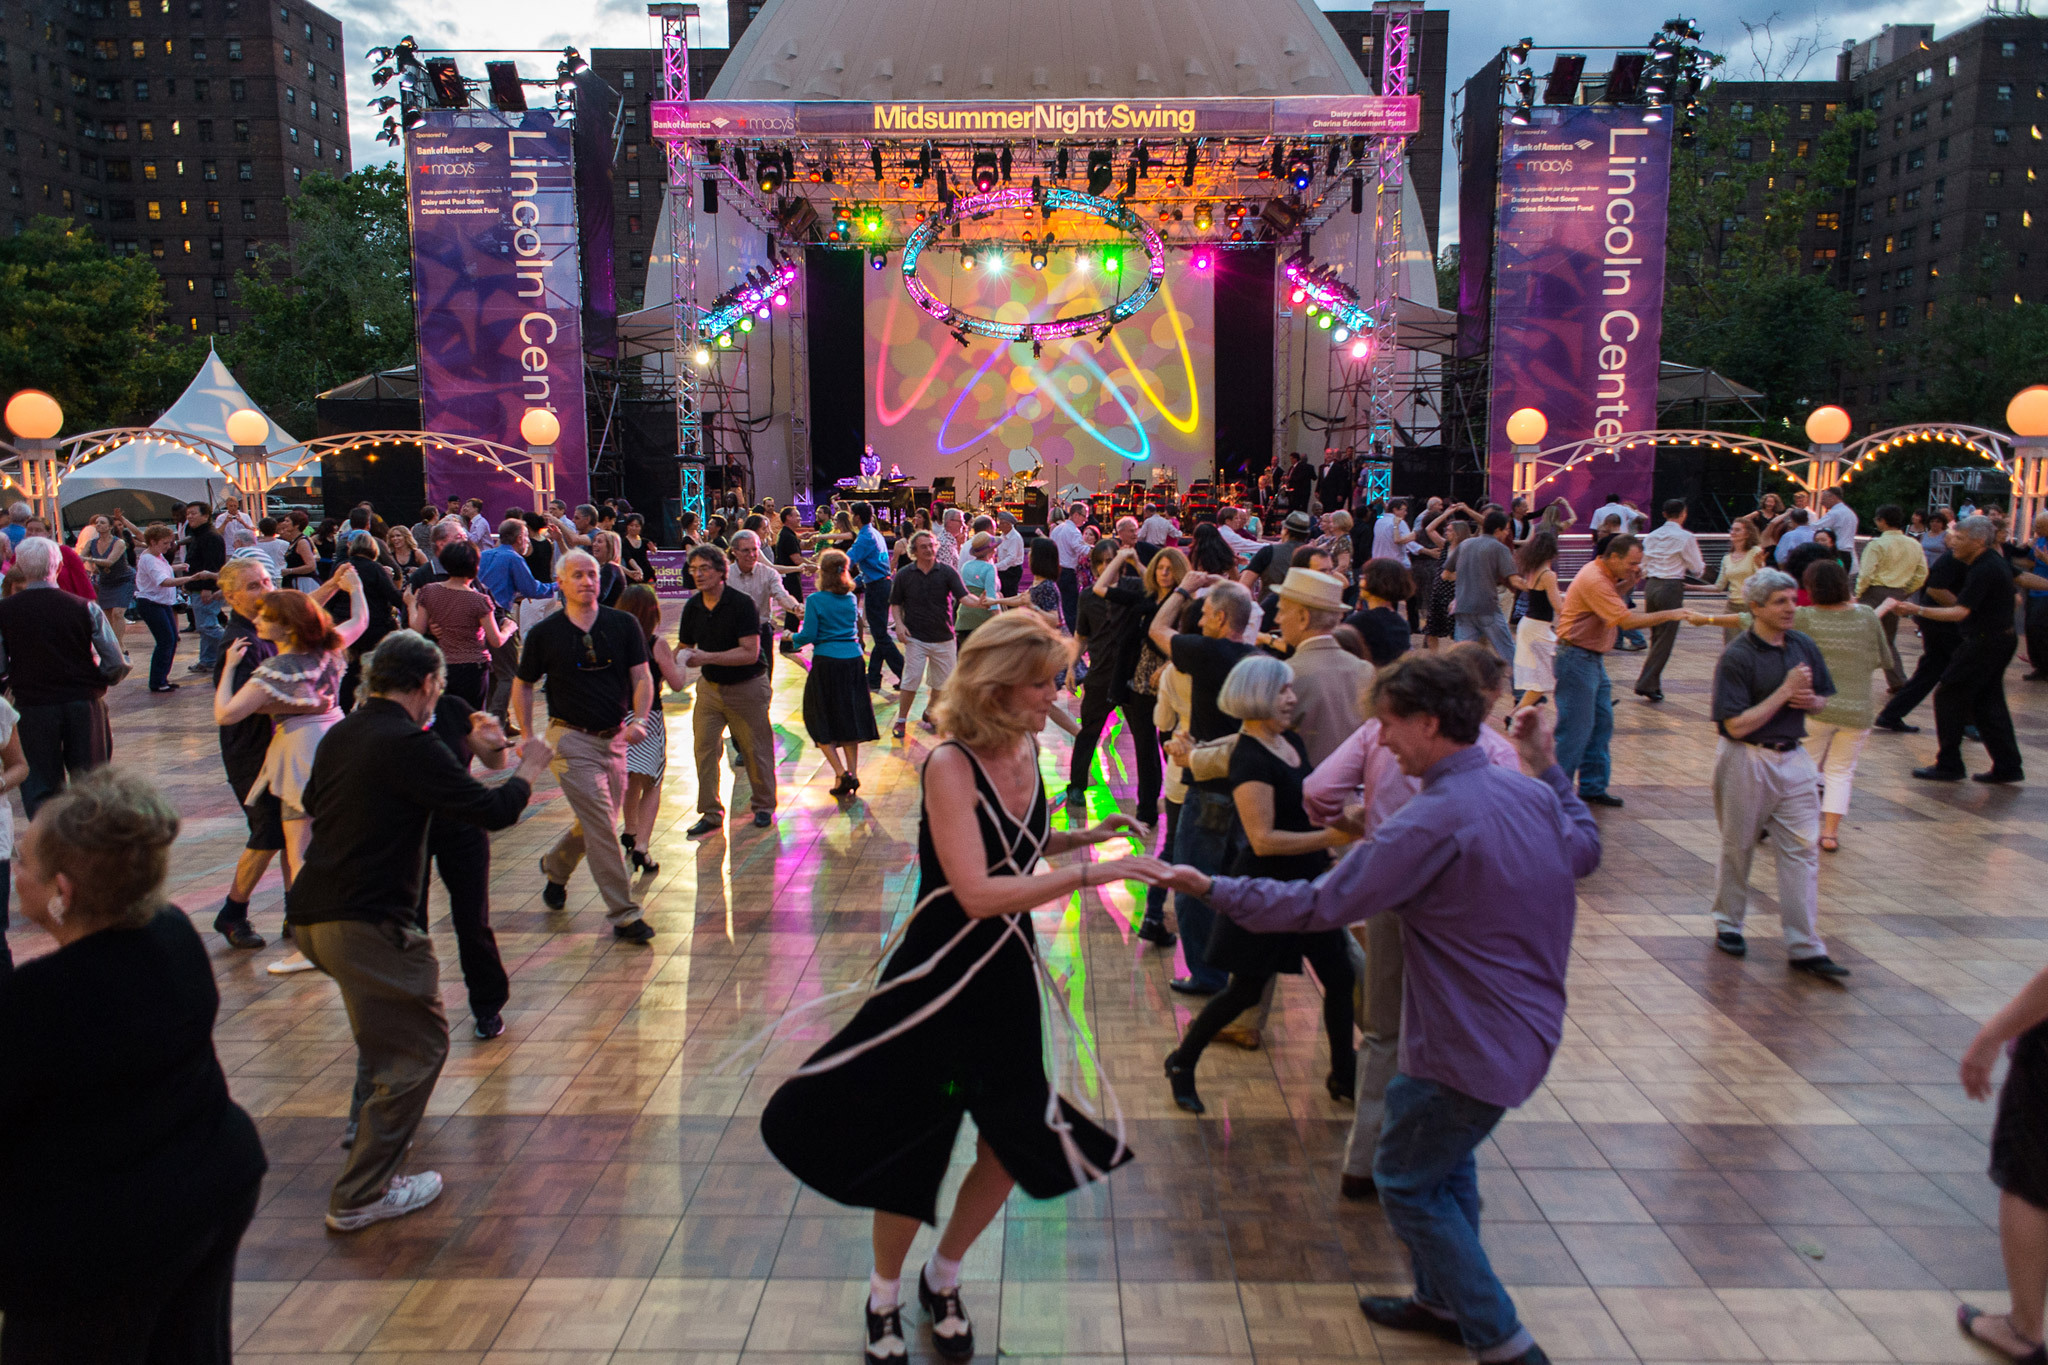 Learn some new moves at Midsummer Night Swing